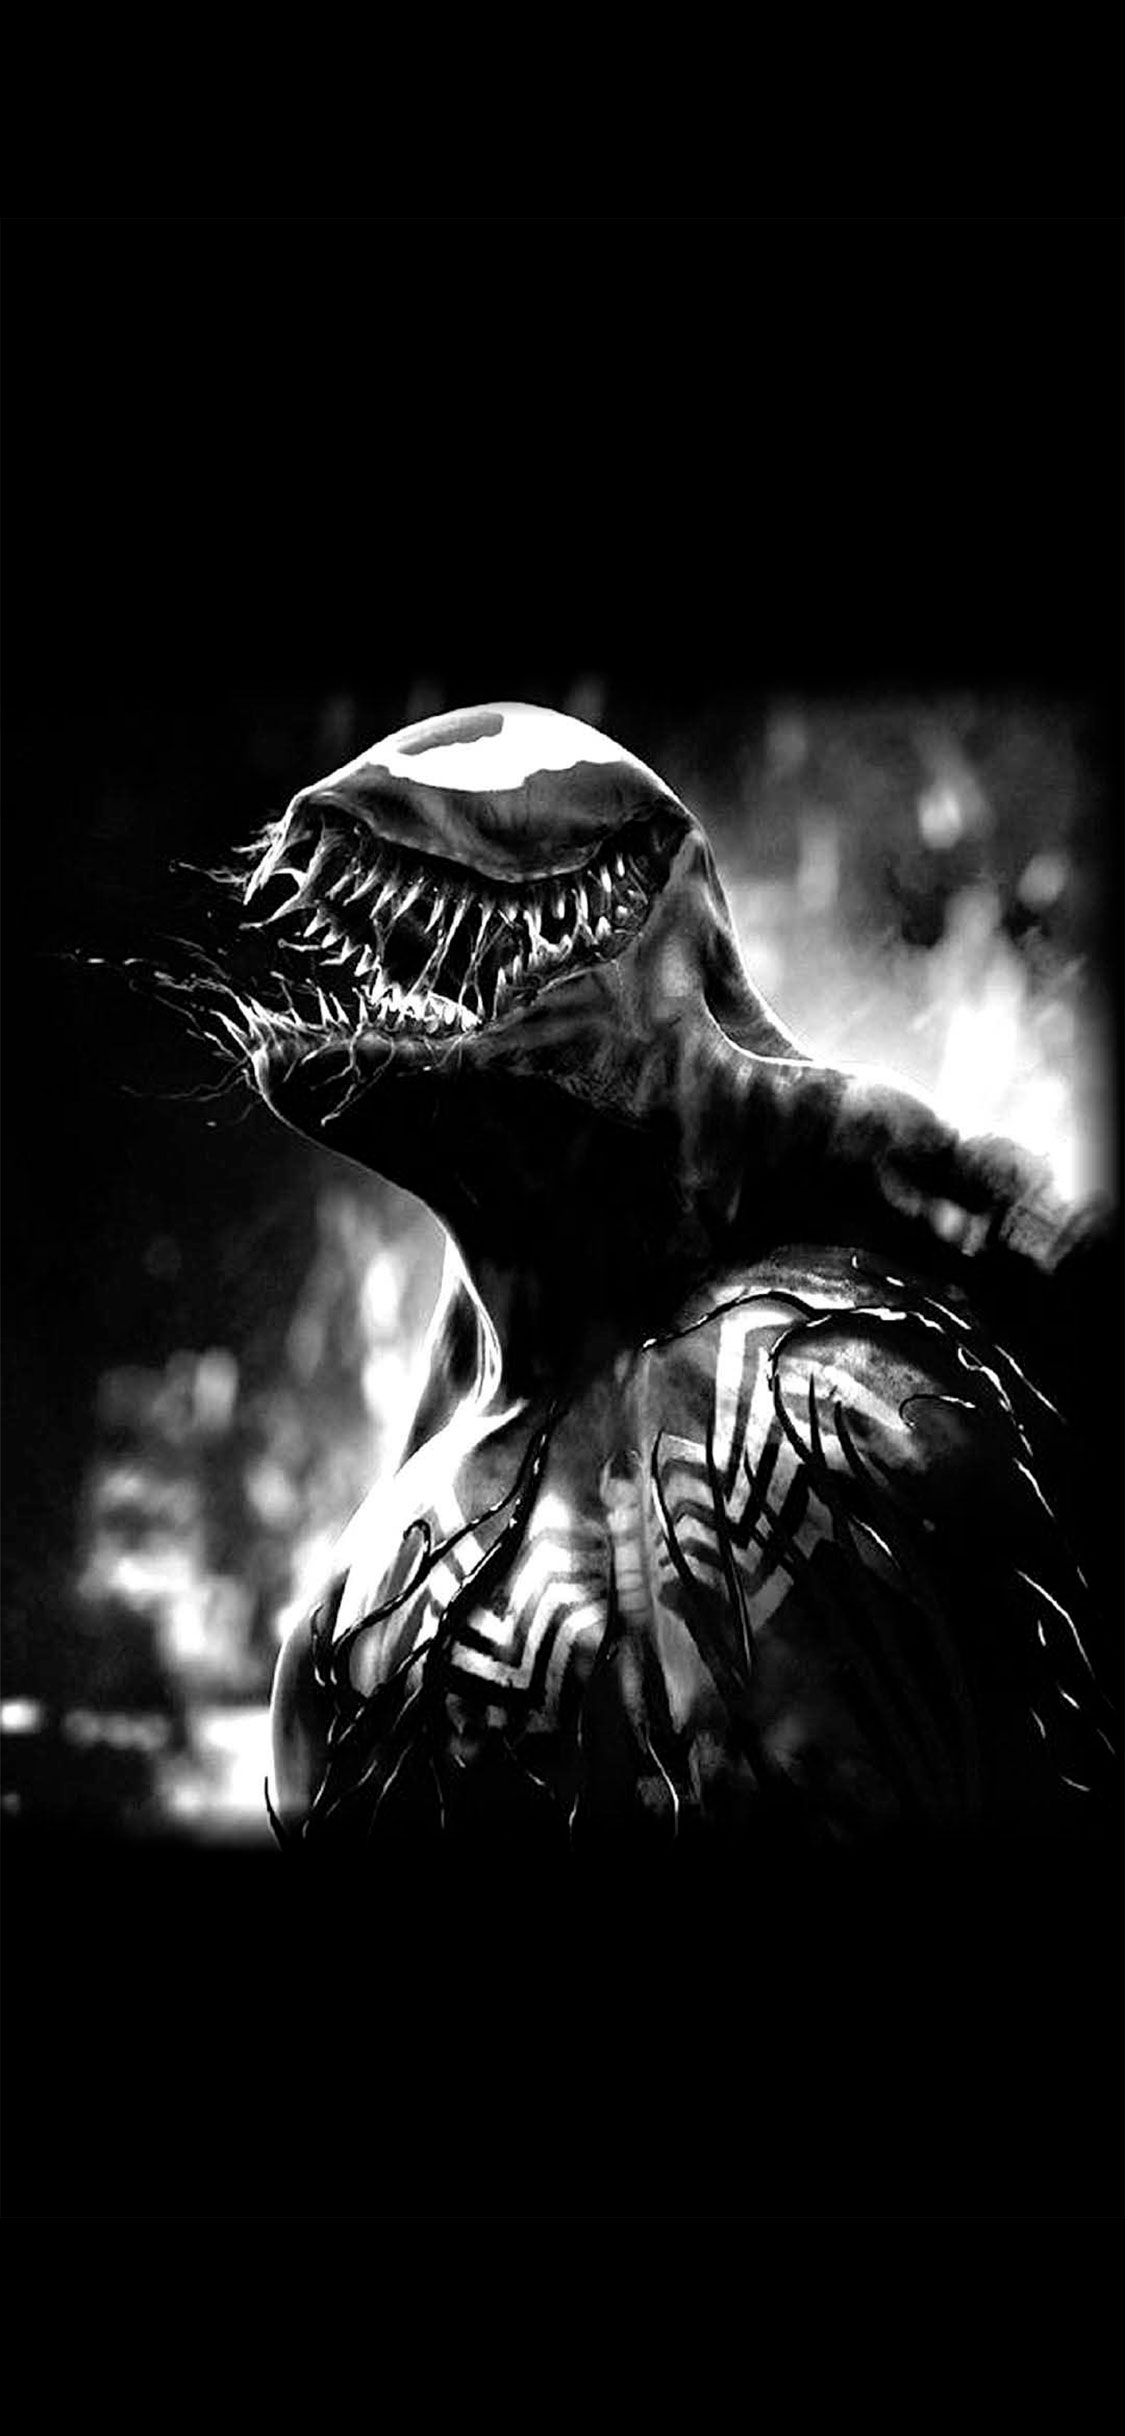 iPhone wallpaper venom1 Fonds d'écran iPhone du 14/05/2018